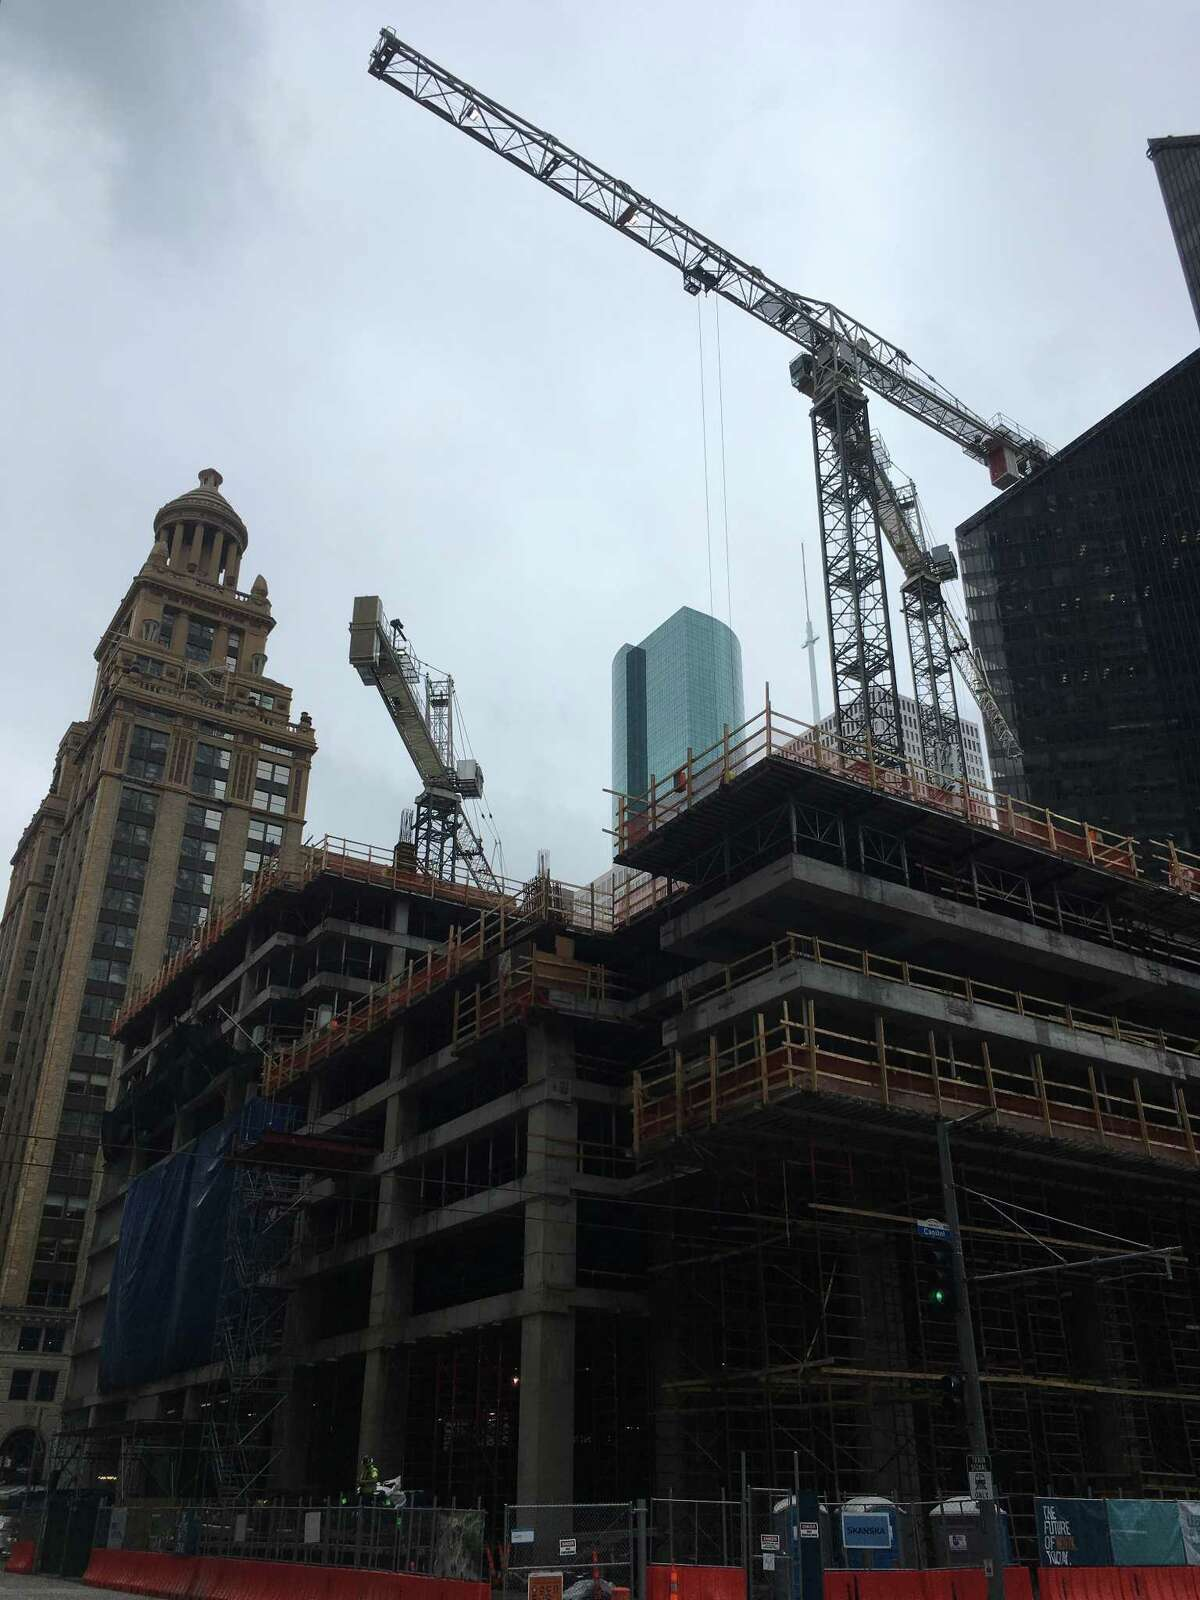 Construction of Capitol Tower continues at 800Capitolin downtown Houston. Since April, five floors of office portion of the 35-story tower have been built and 10 floors of the garage are up. Bank of America will move to the tower in 2019. June 22, 2017 photo.